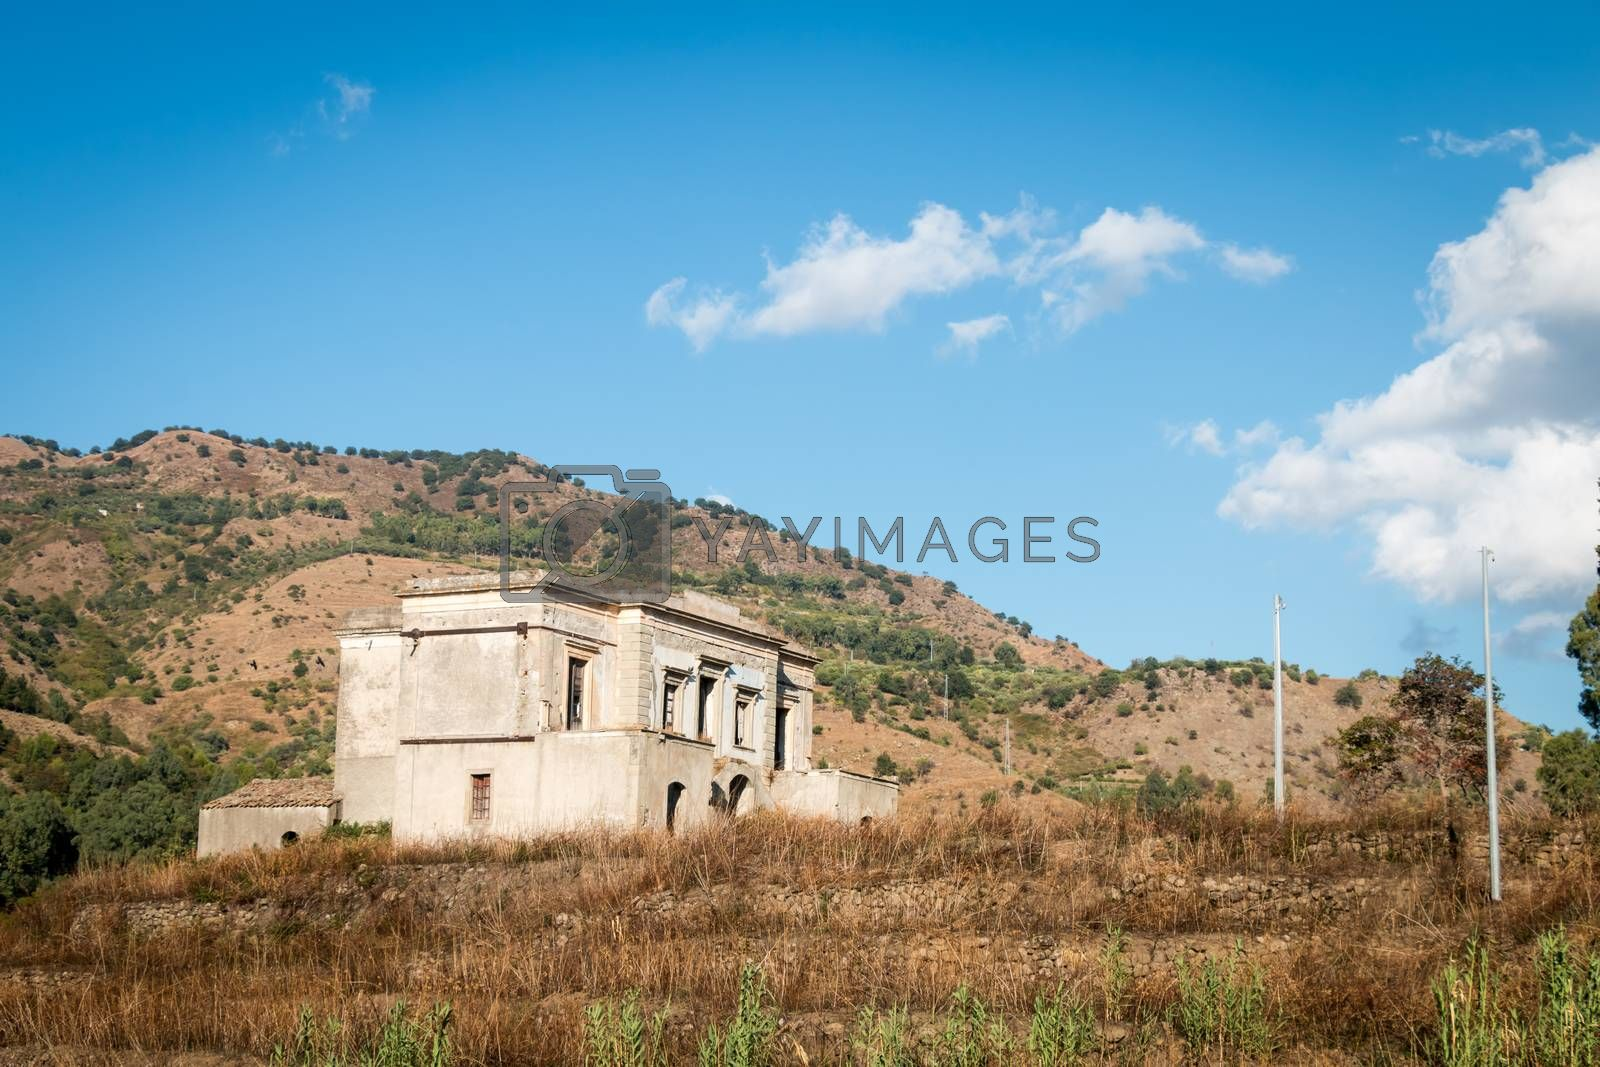 An old noble country house in Sicily Italy